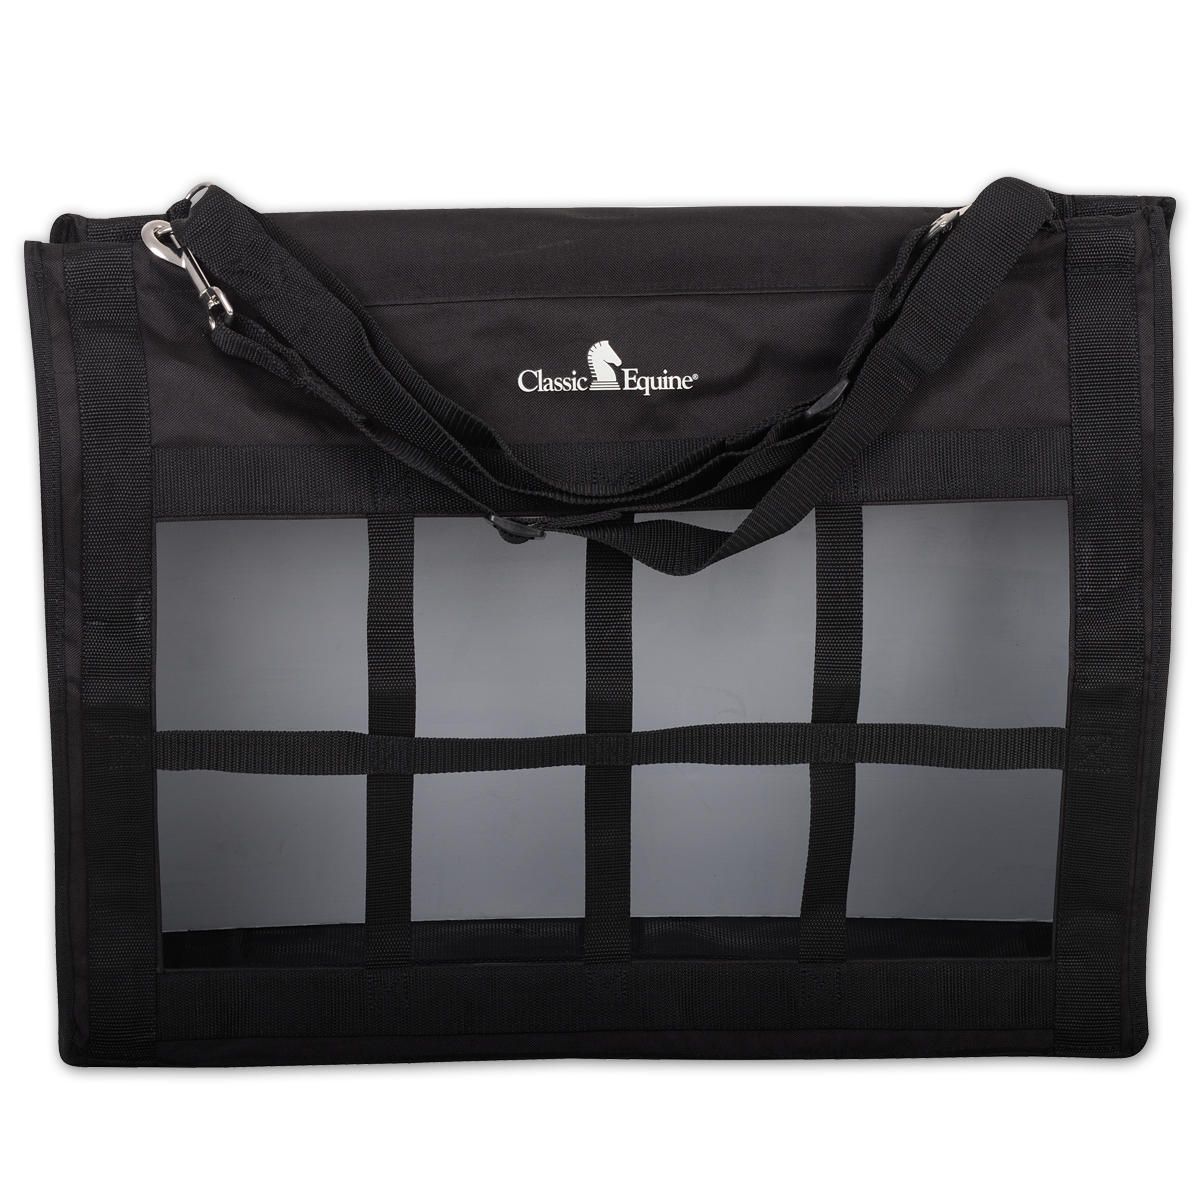 Classic Equine Top Load Hay Bag